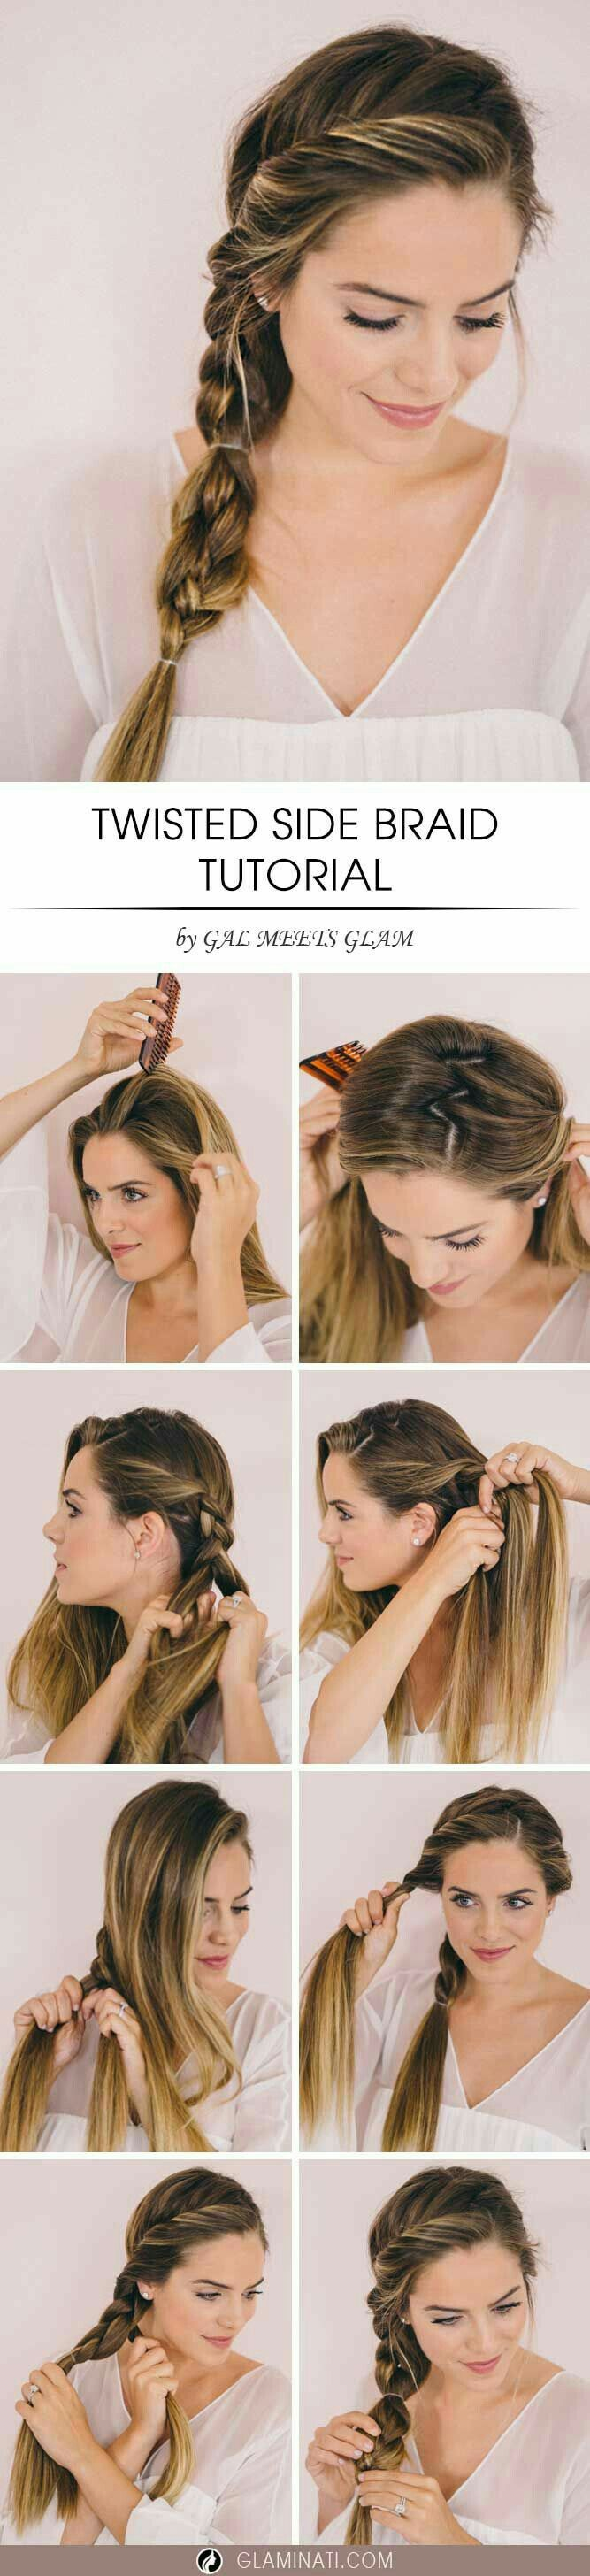 Pin by Ashlee White on Hair Pinterest